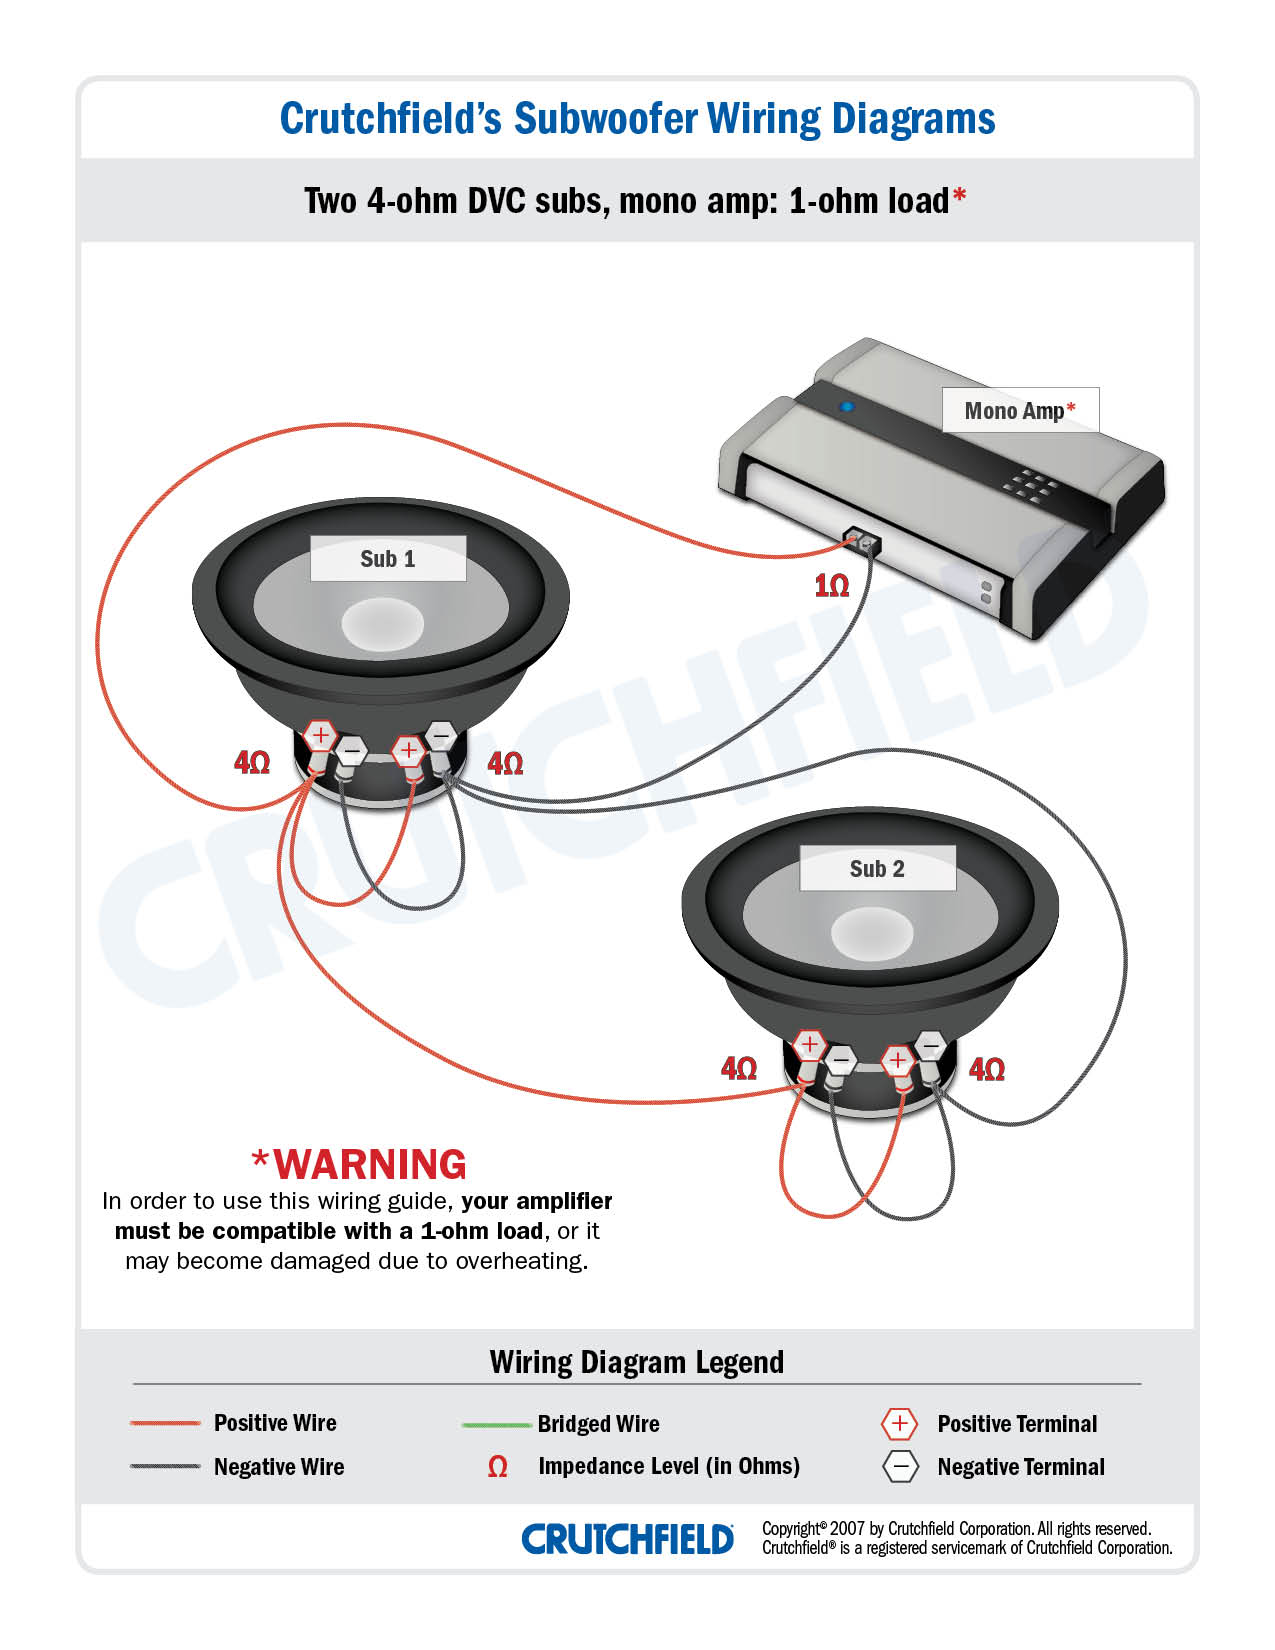 2 DVC 4 ohm mono low imp amplifier wiring diagrams how to add an amplifier to your car car stereo amp wiring diagram at eliteediting.co